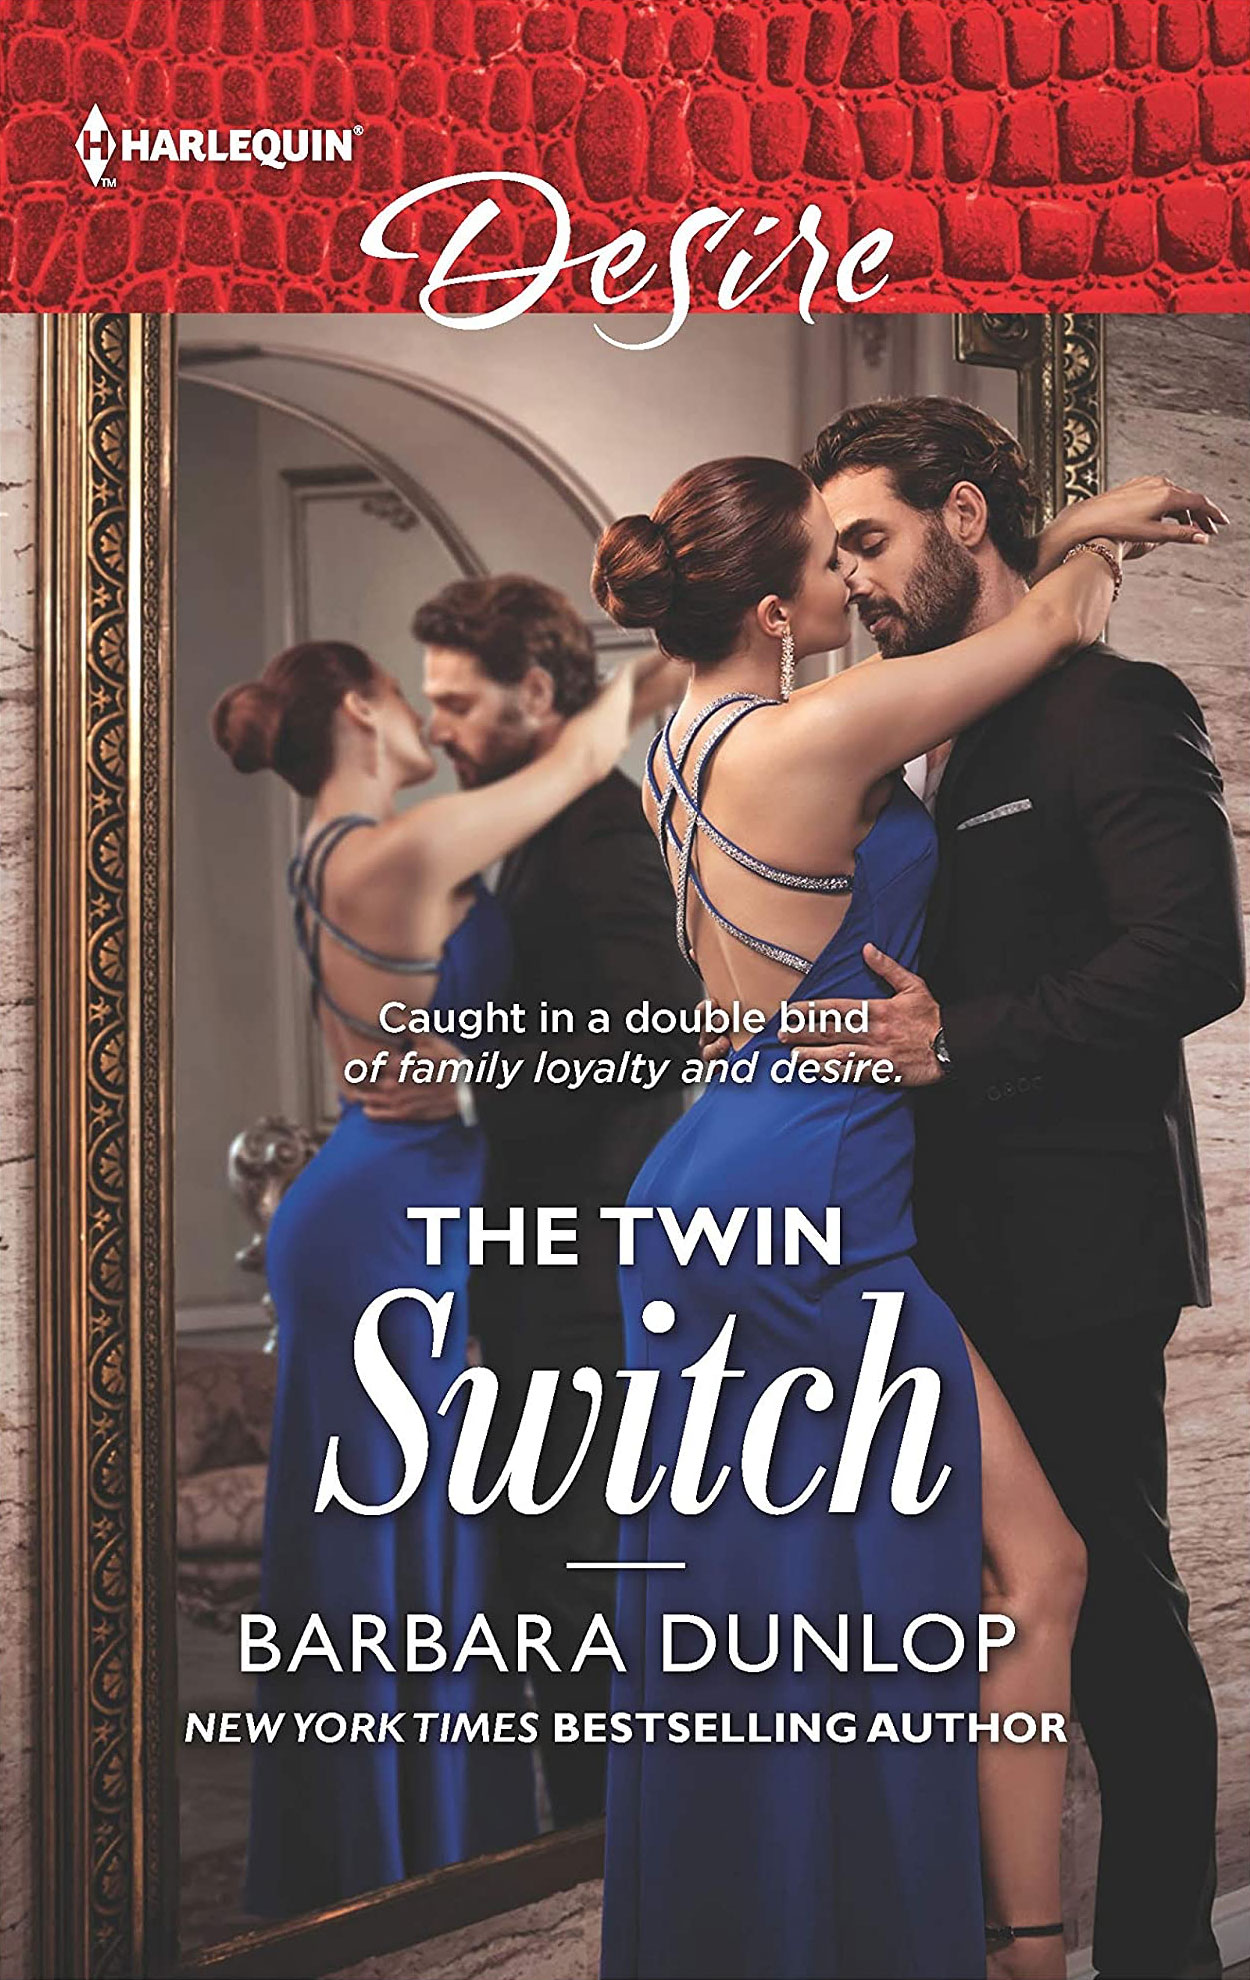 The Twin Switch by Barbara Dunlop